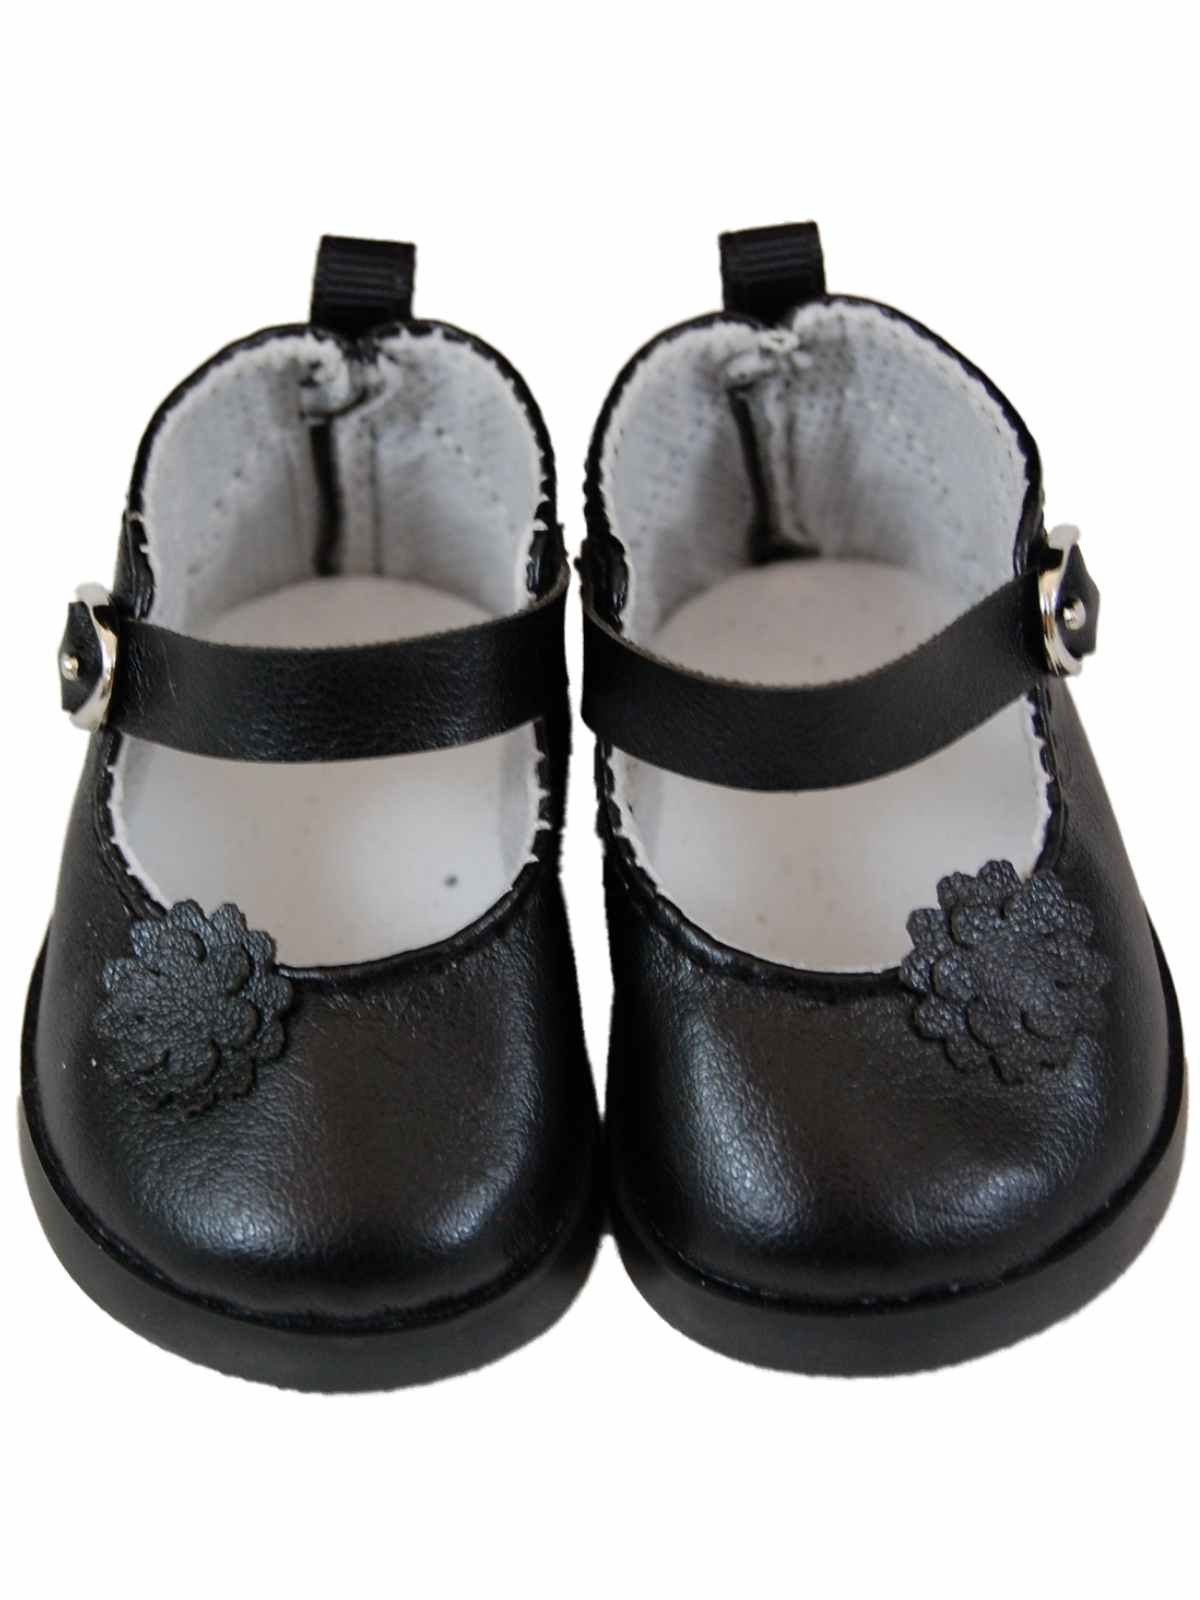 Baby Dear Black Baby Dress Shoes